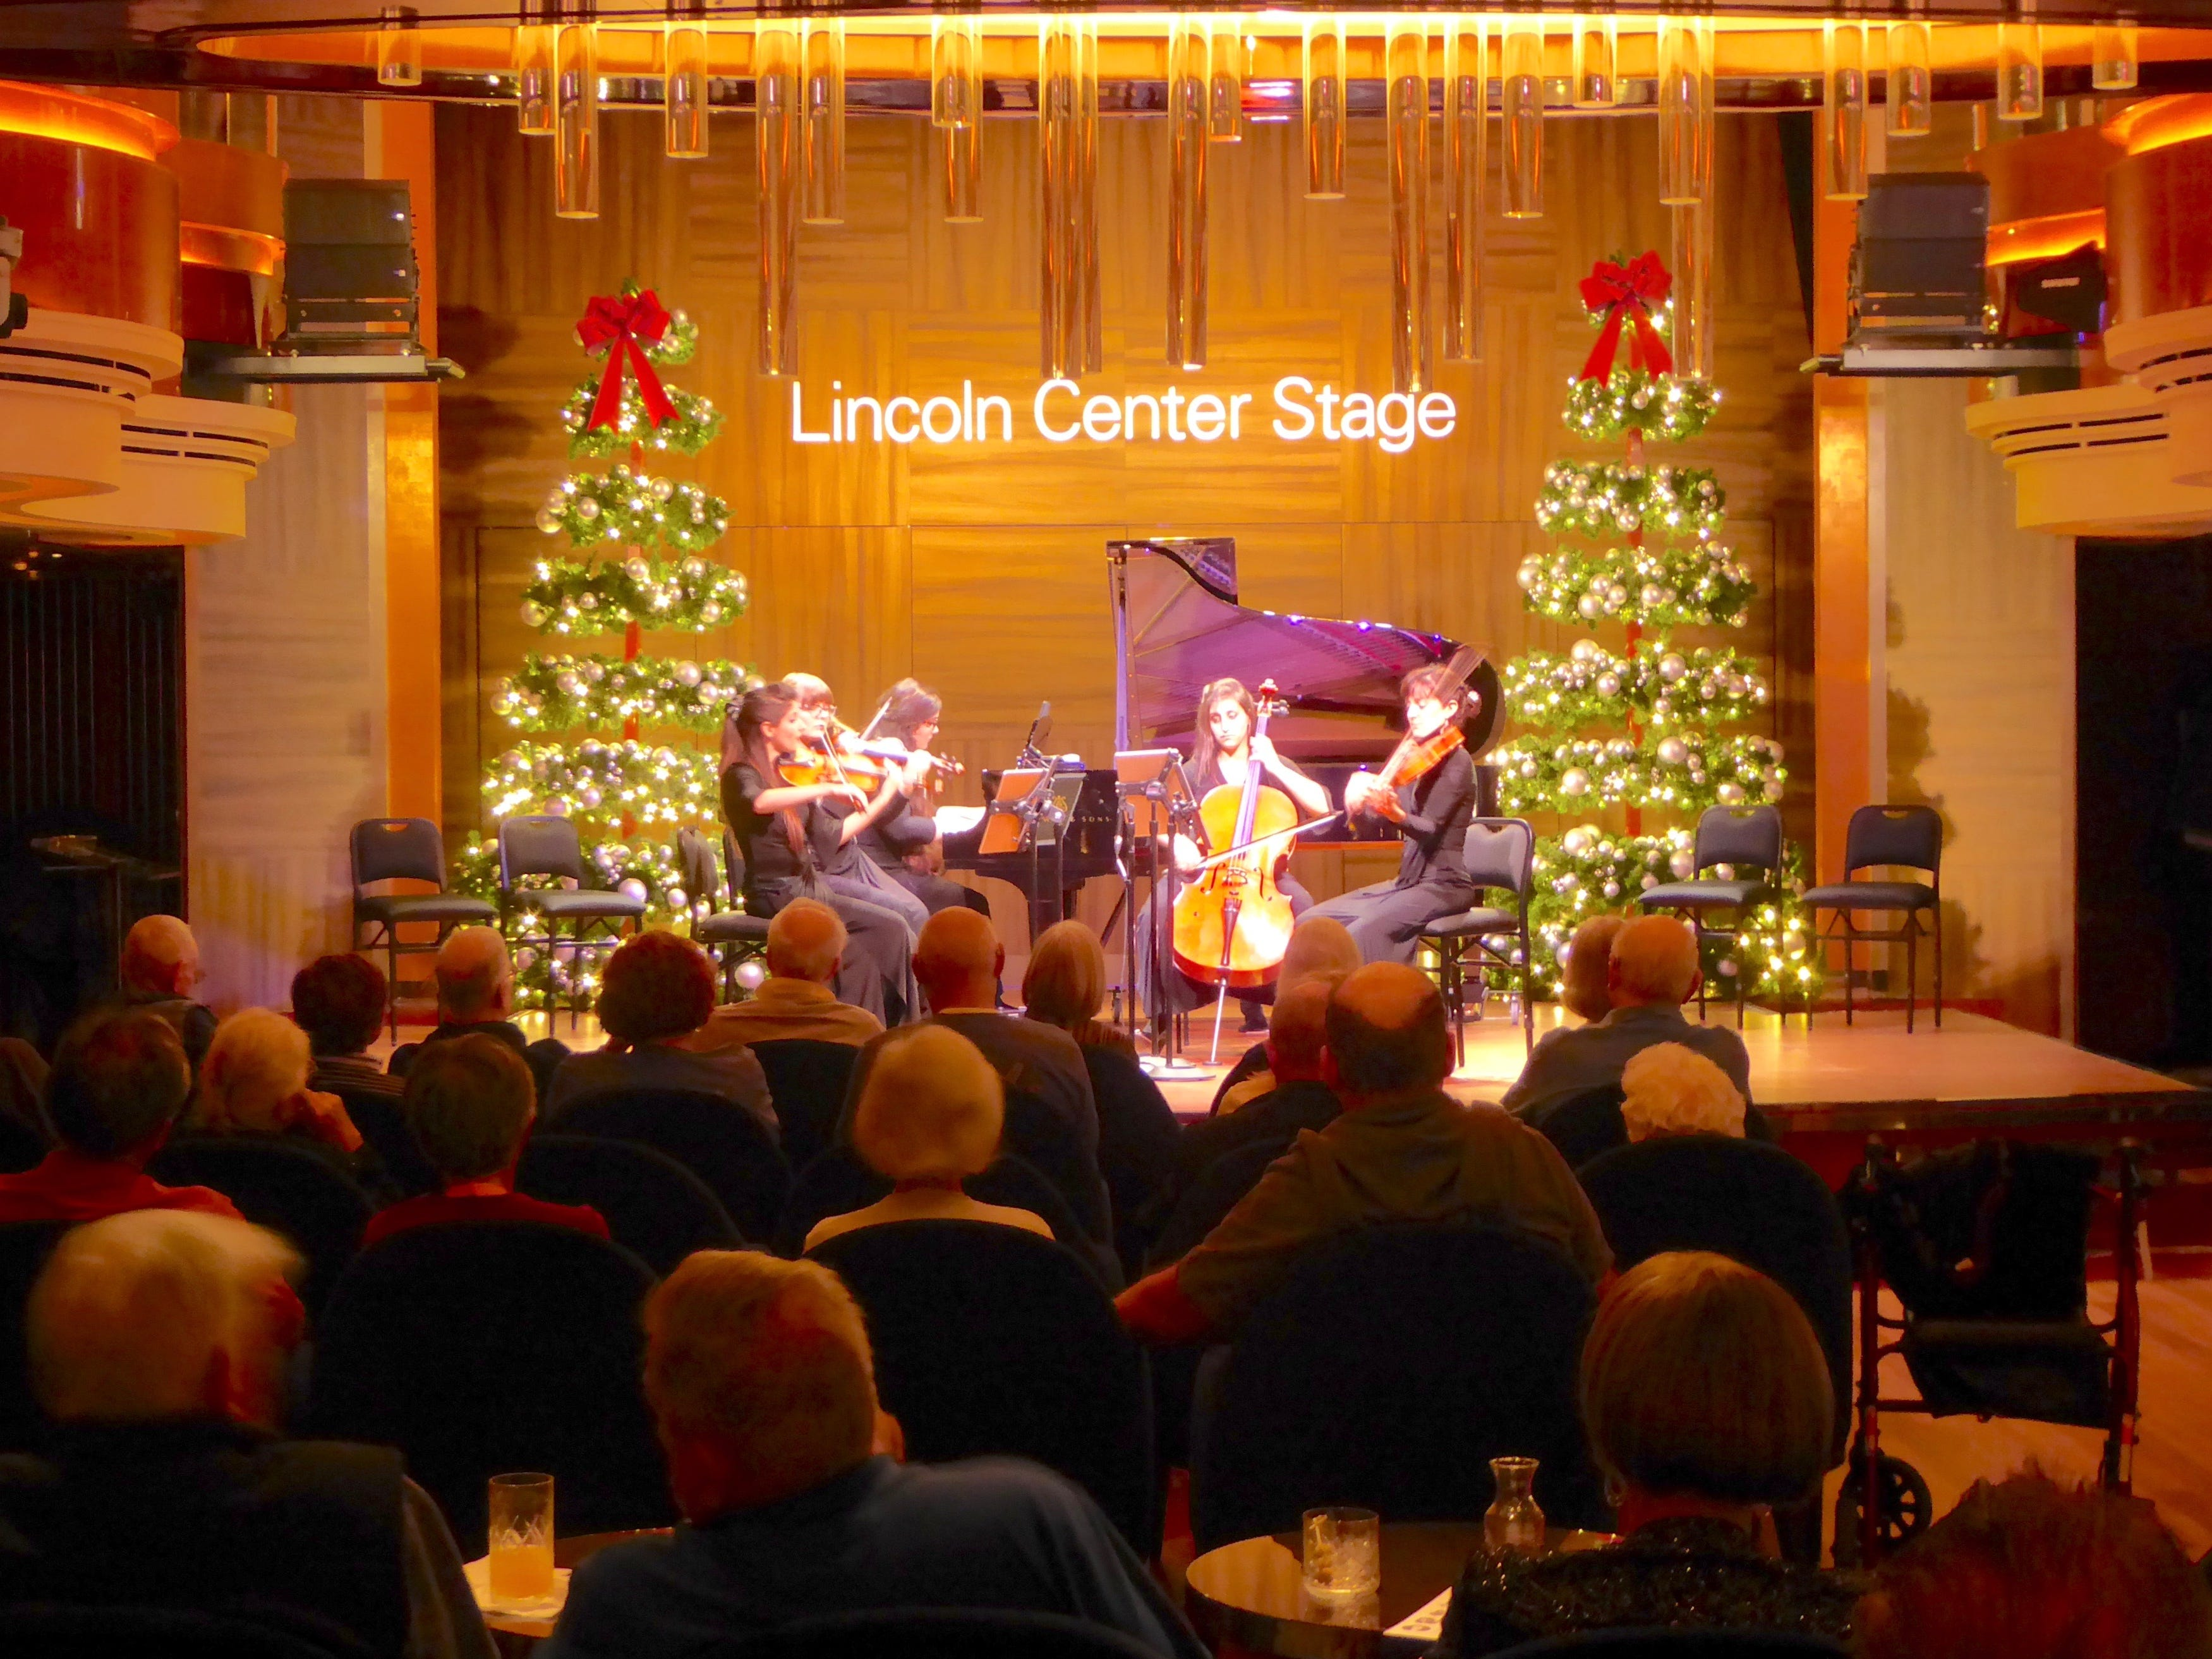 The lower level of Lincoln Center Stage/BB King's Blues Club is located on port Deck 2 at the aft end of the Music Walk. In the early evening, it is the setting for classical music performances.